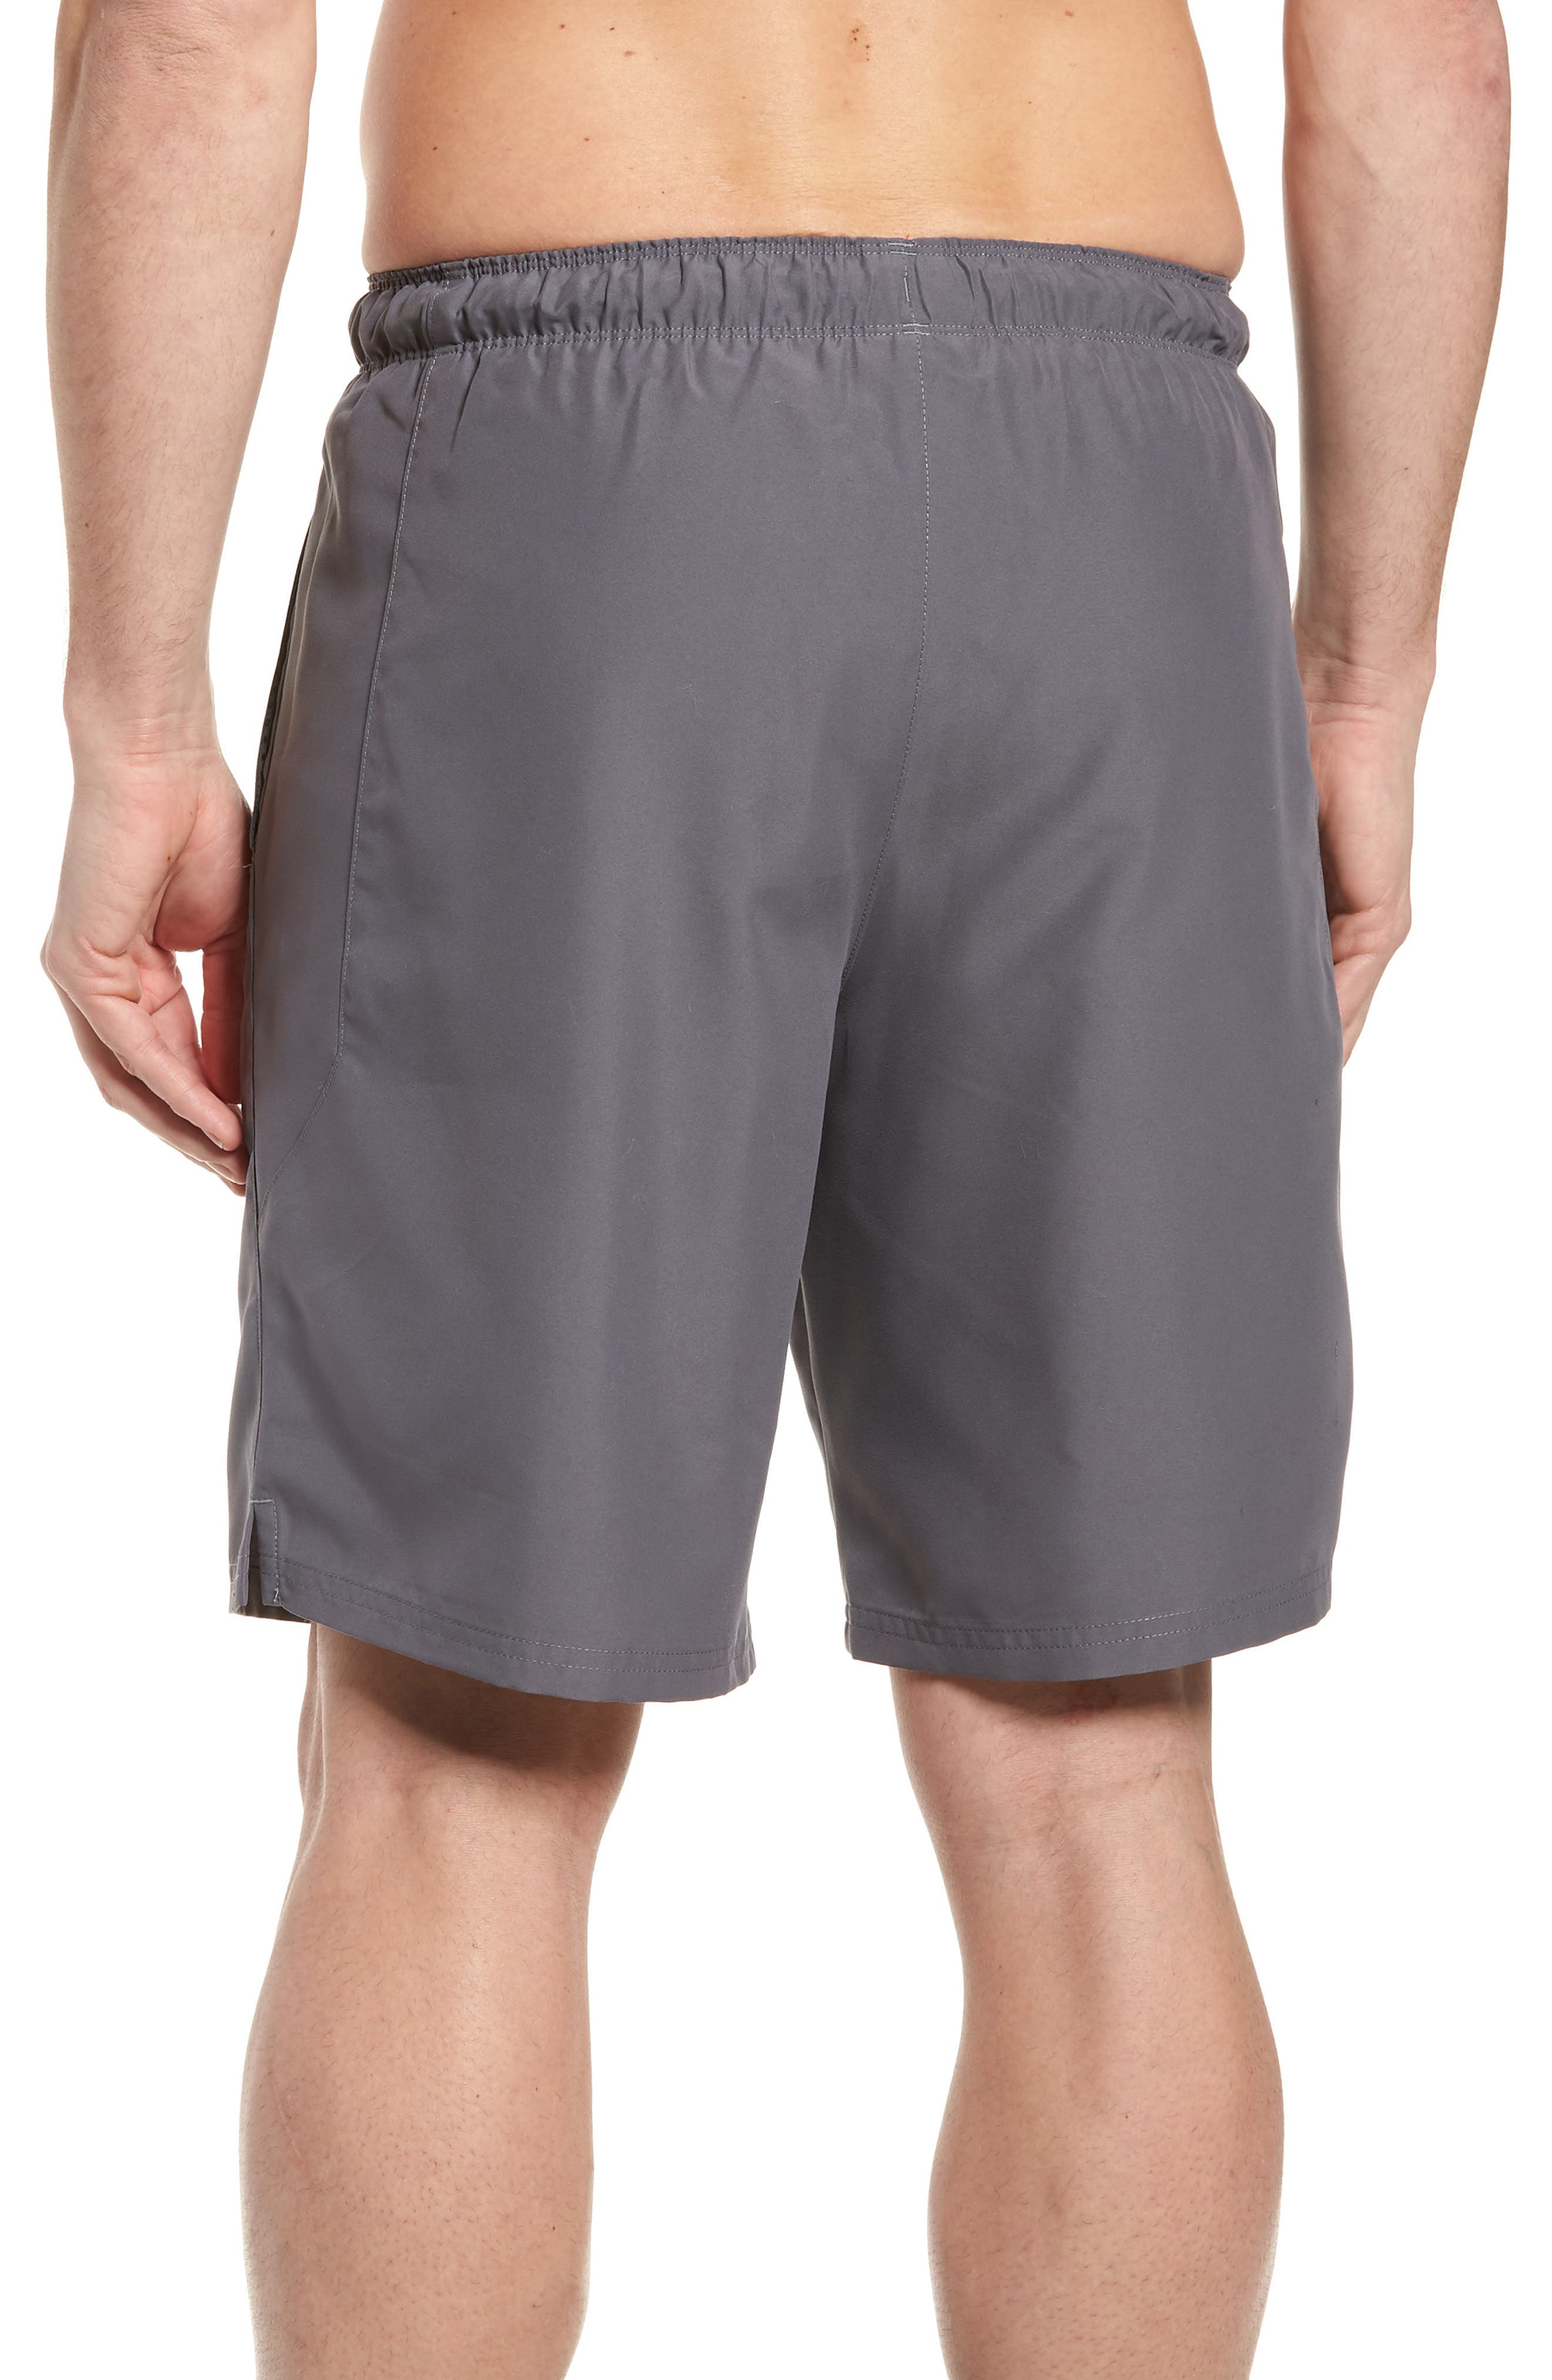 Mania Athletic Shorts,                             Alternate thumbnail 2, color,                             Graphite / Pierce / Grey